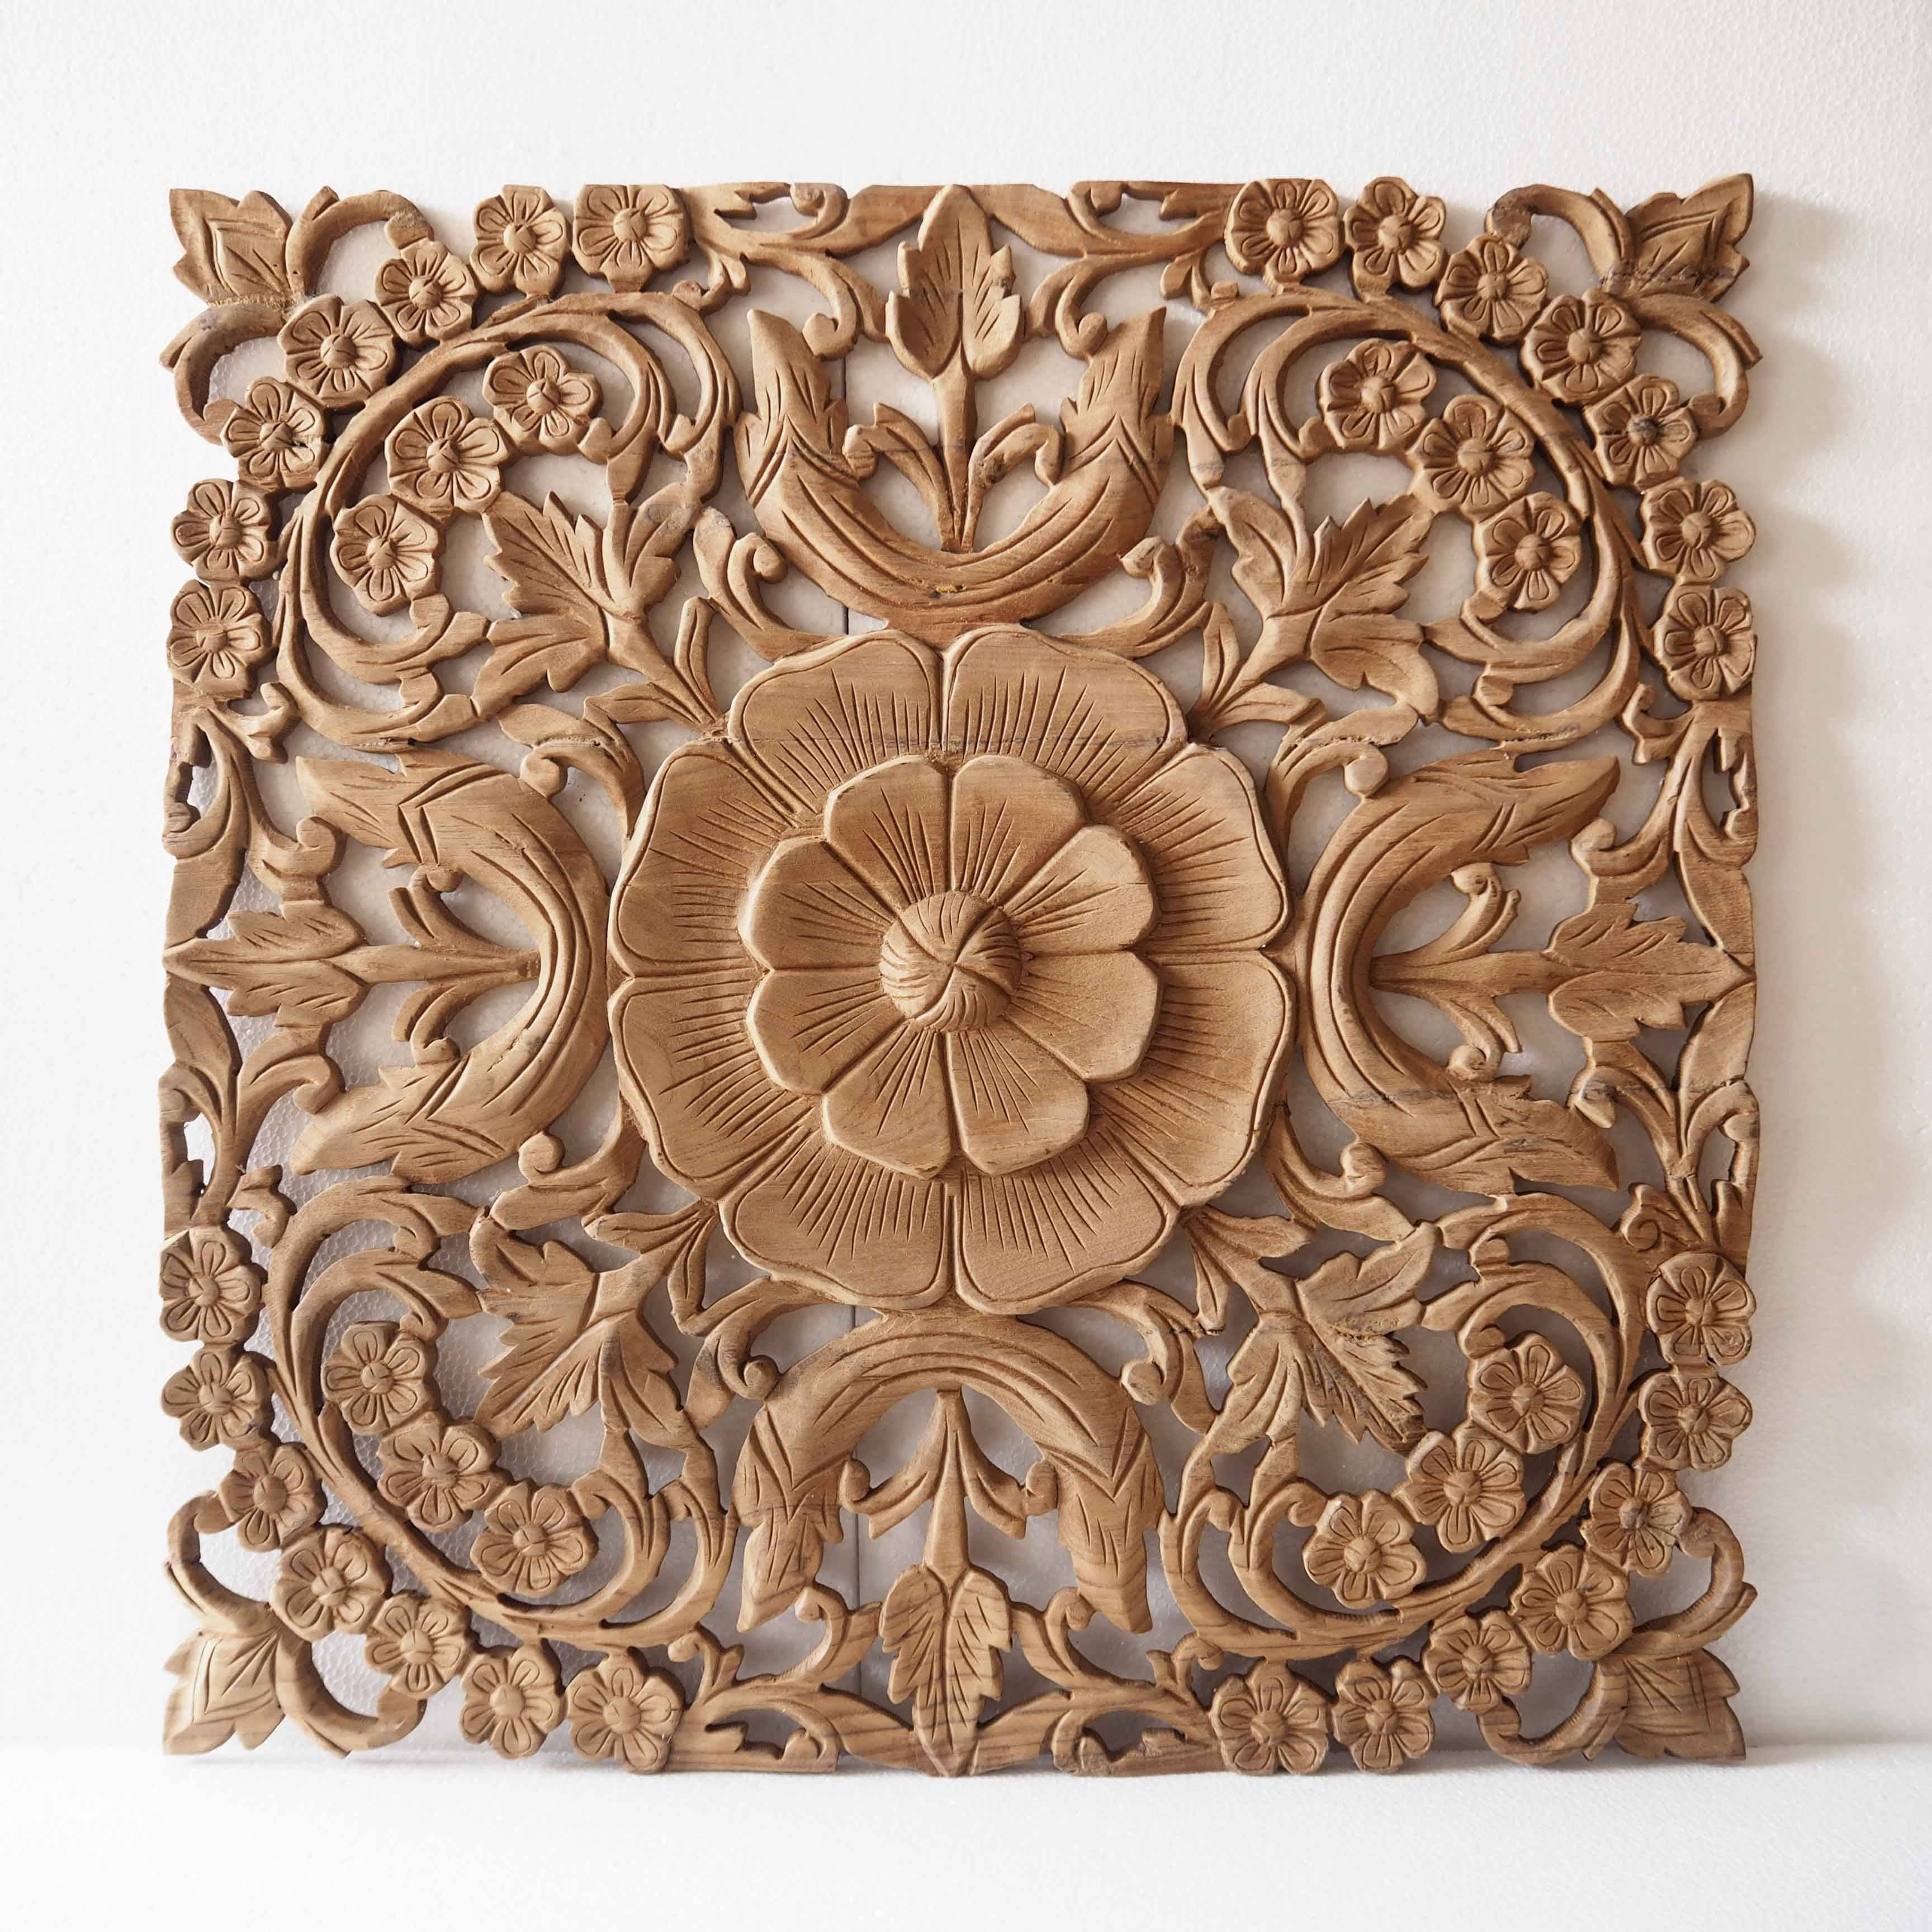 Natural Wooden Wall Art Panel From Thailand - Siam Sawadee with Best and Newest Natural Wood Wall Art